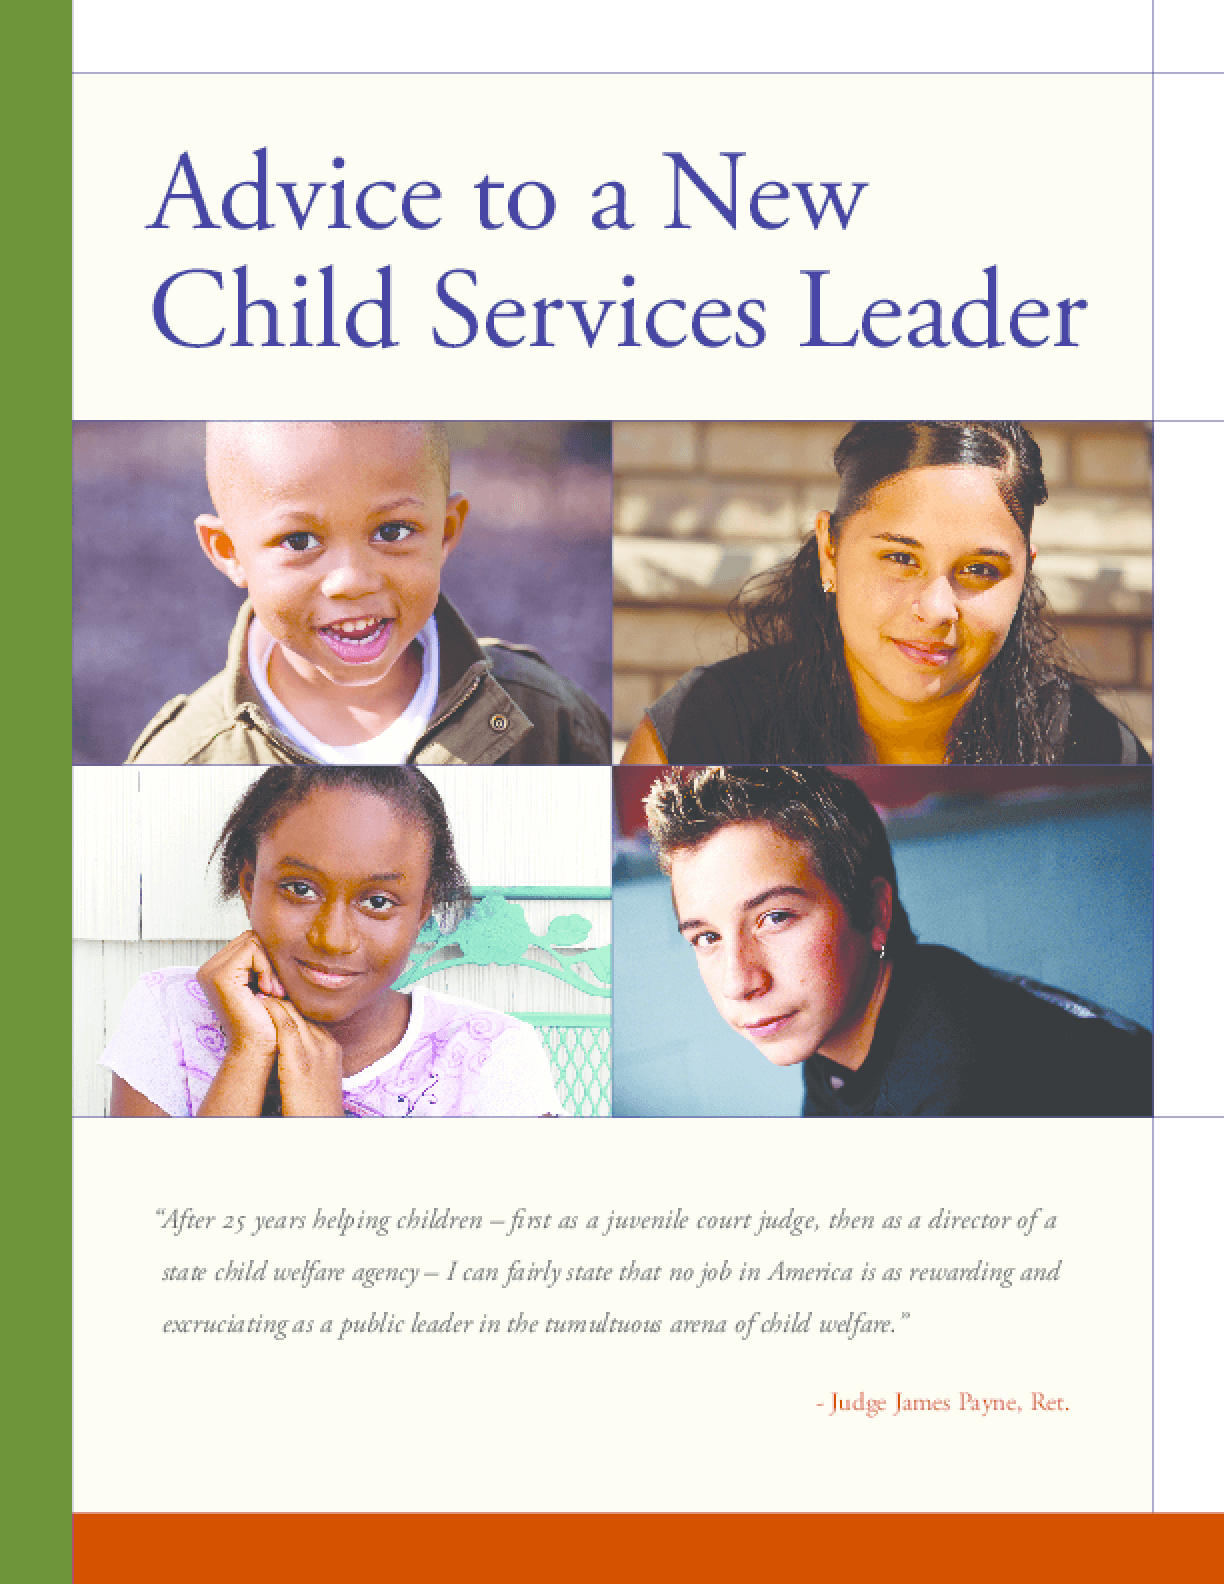 Advice to a New Child Services Leader